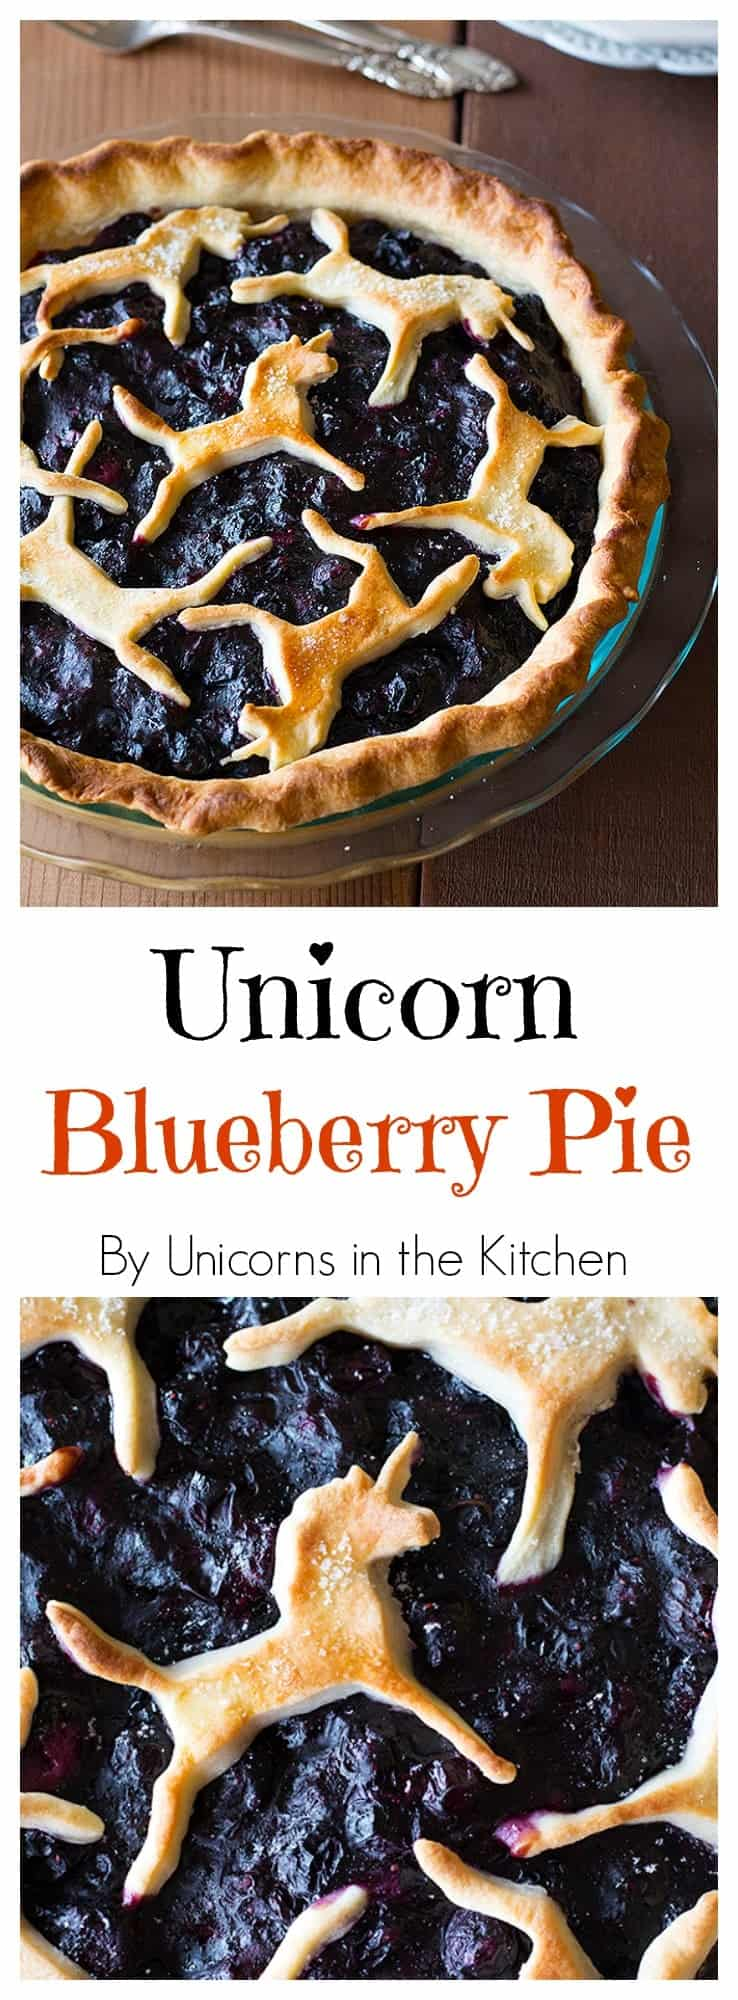 is best ever unicorn blueberry pie, drip free and with a flaky crust ...